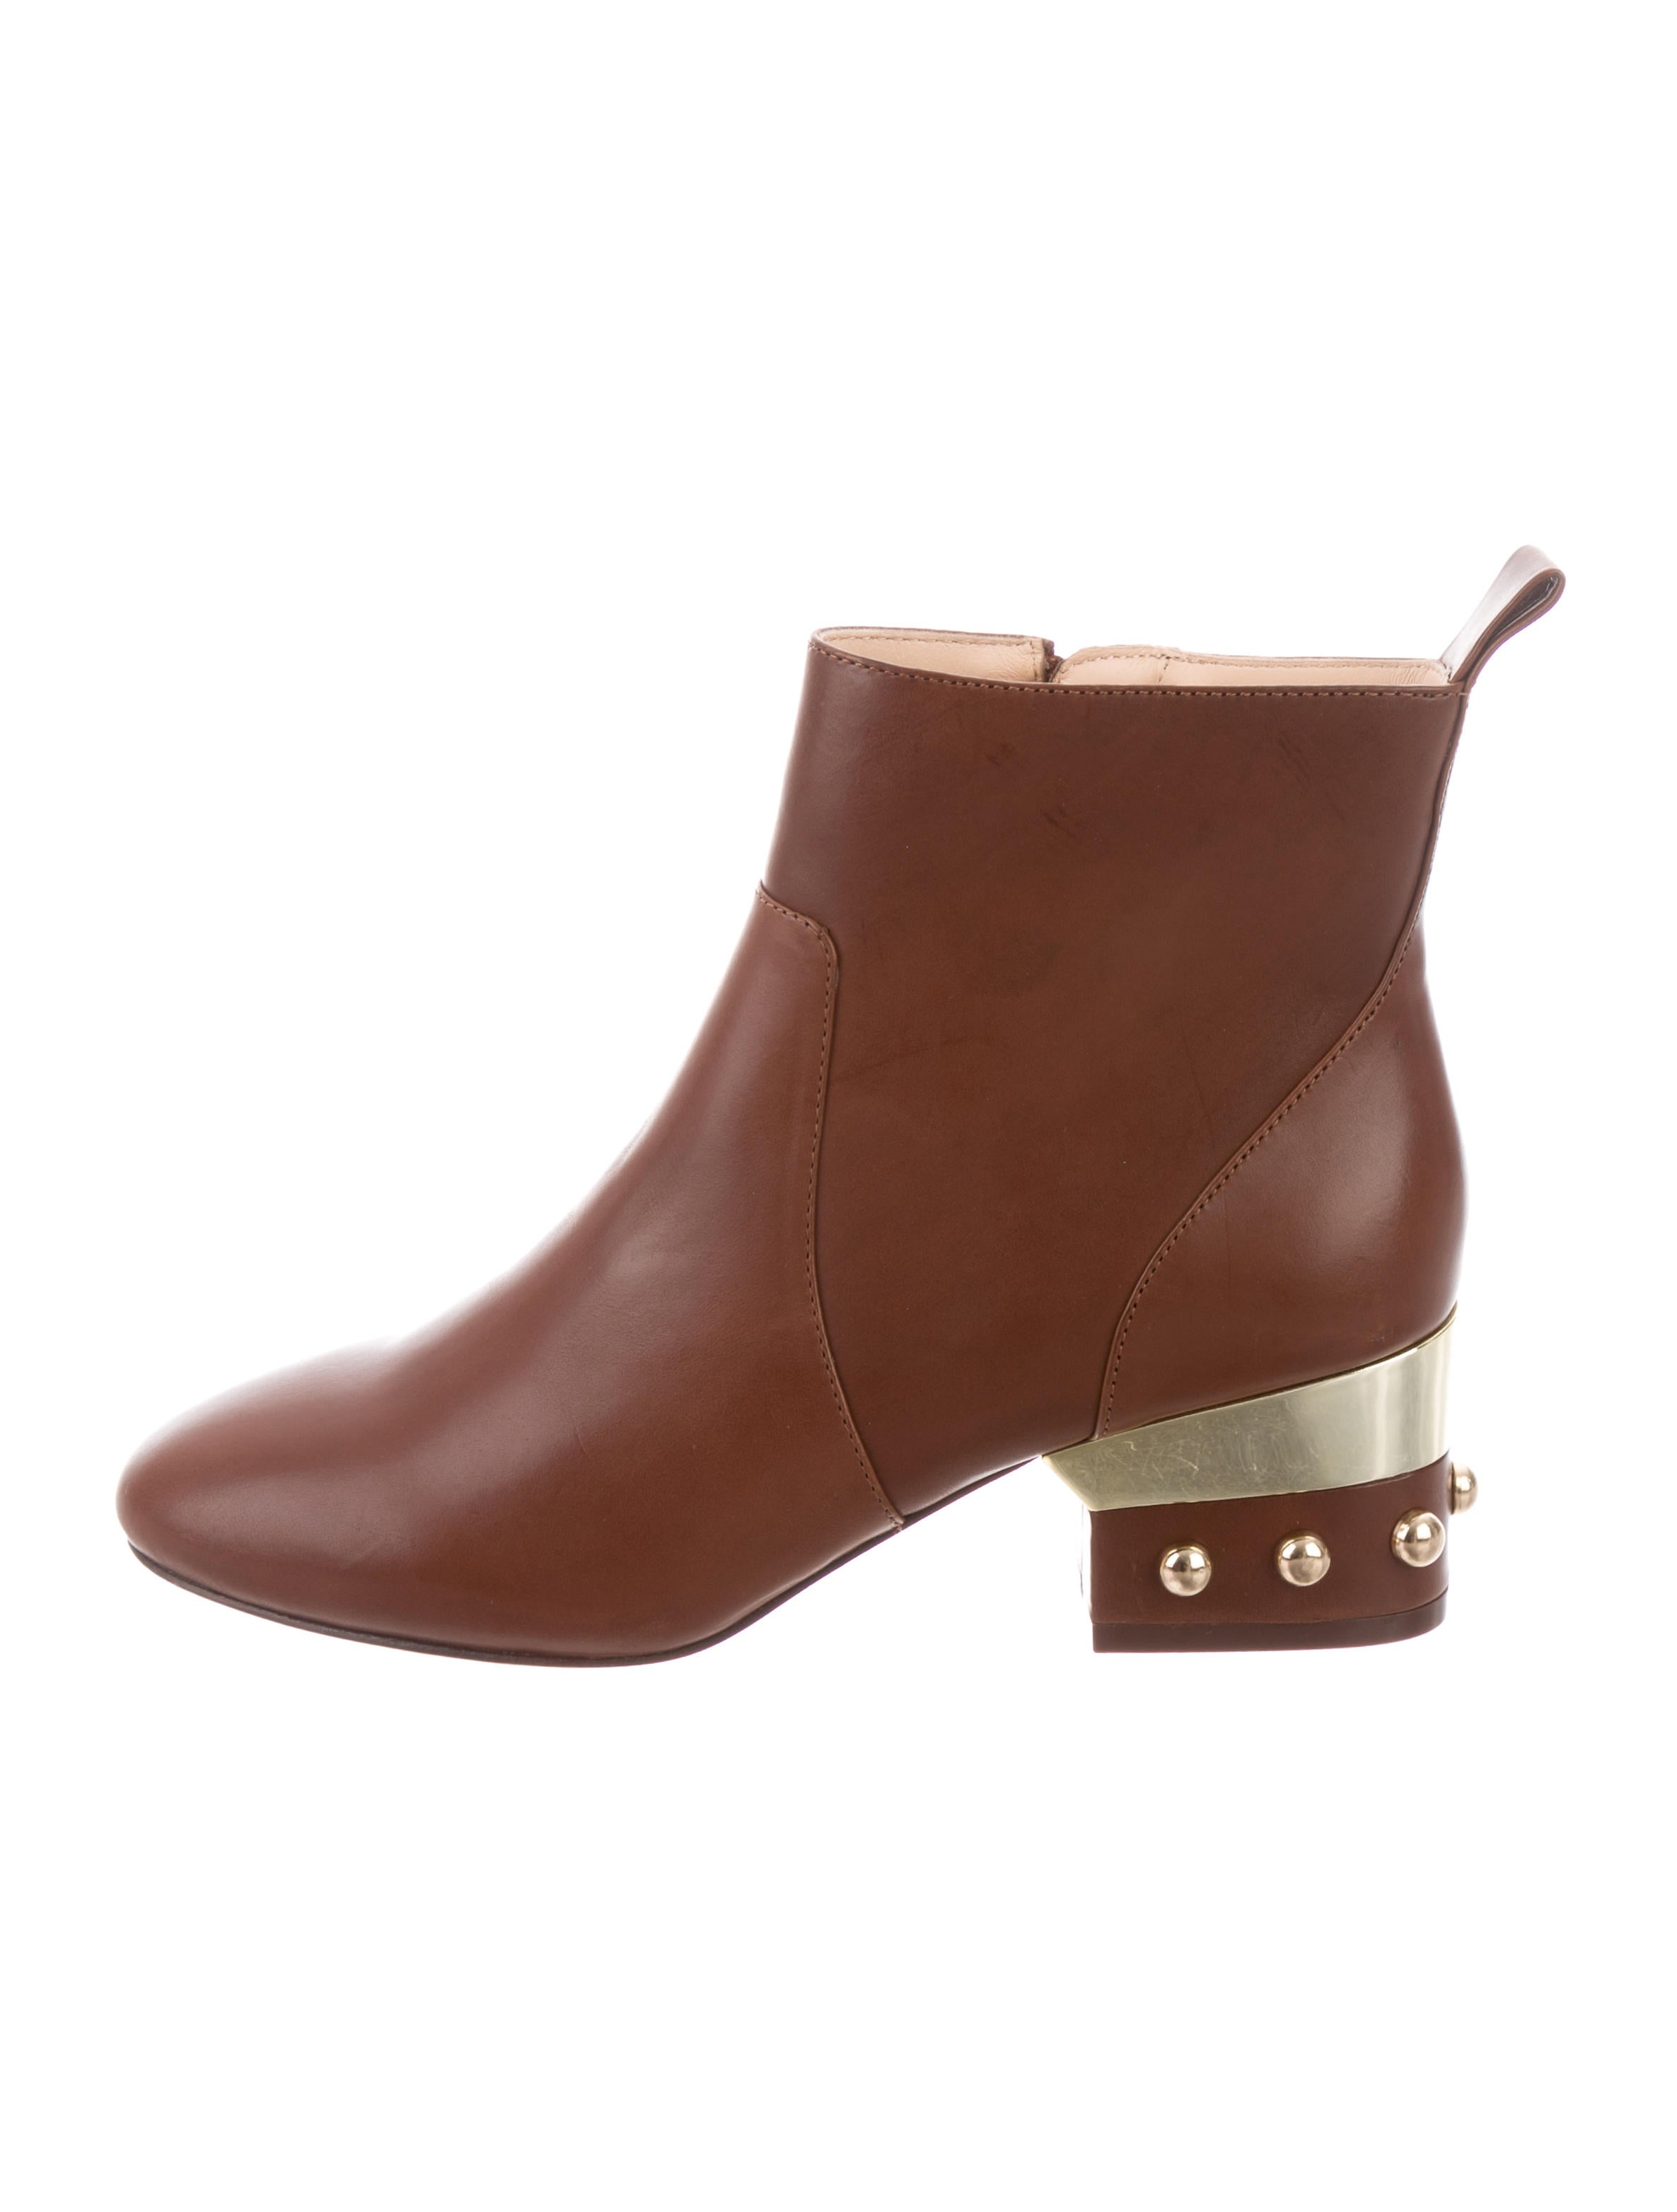 cost online Isa Tapia Hardy Ankle Boots w/ Tags cheap fast delivery Xs42Zh0